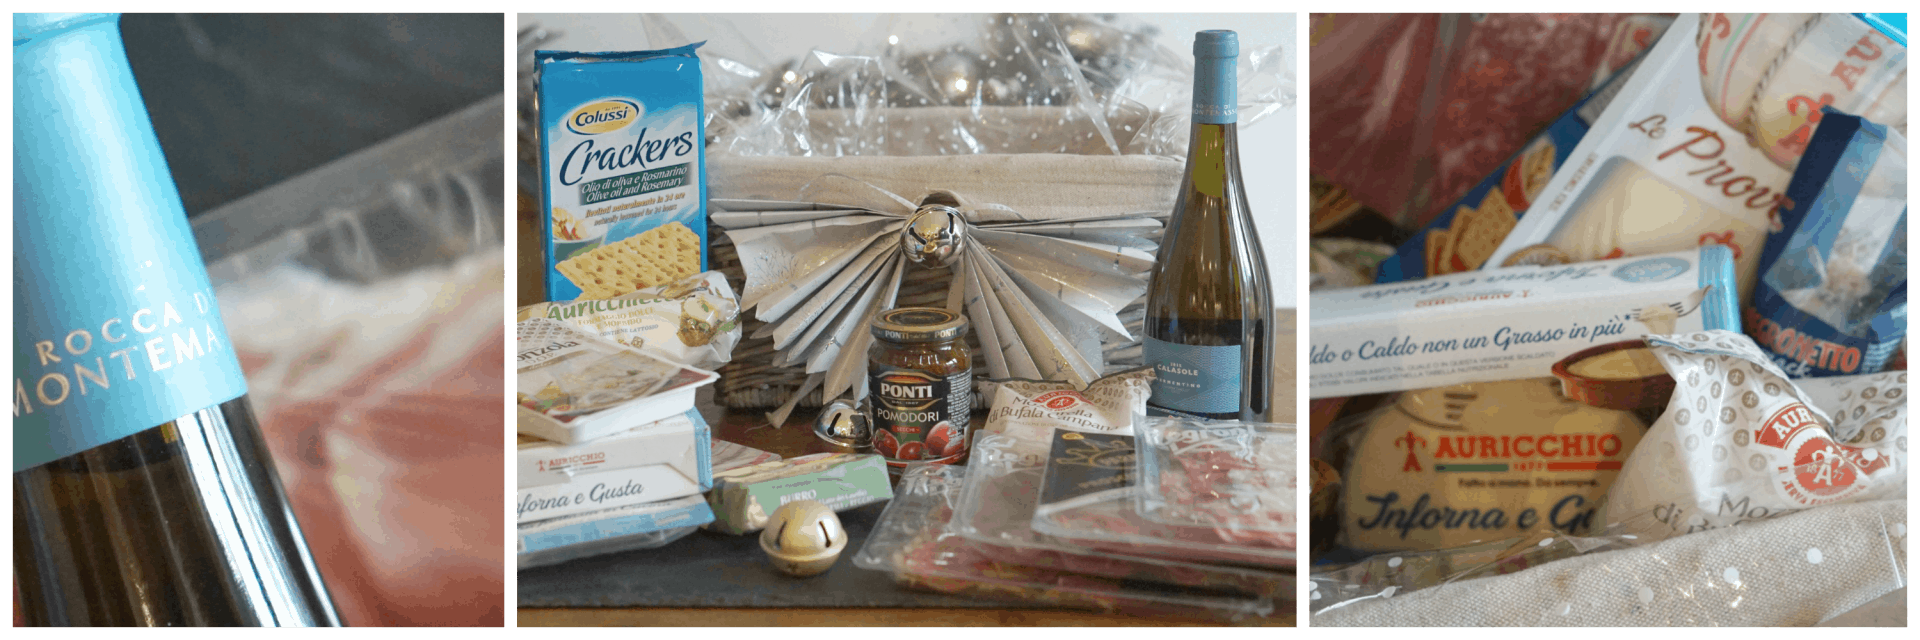 Making An Antipasto Hamper With Ciao Gusto